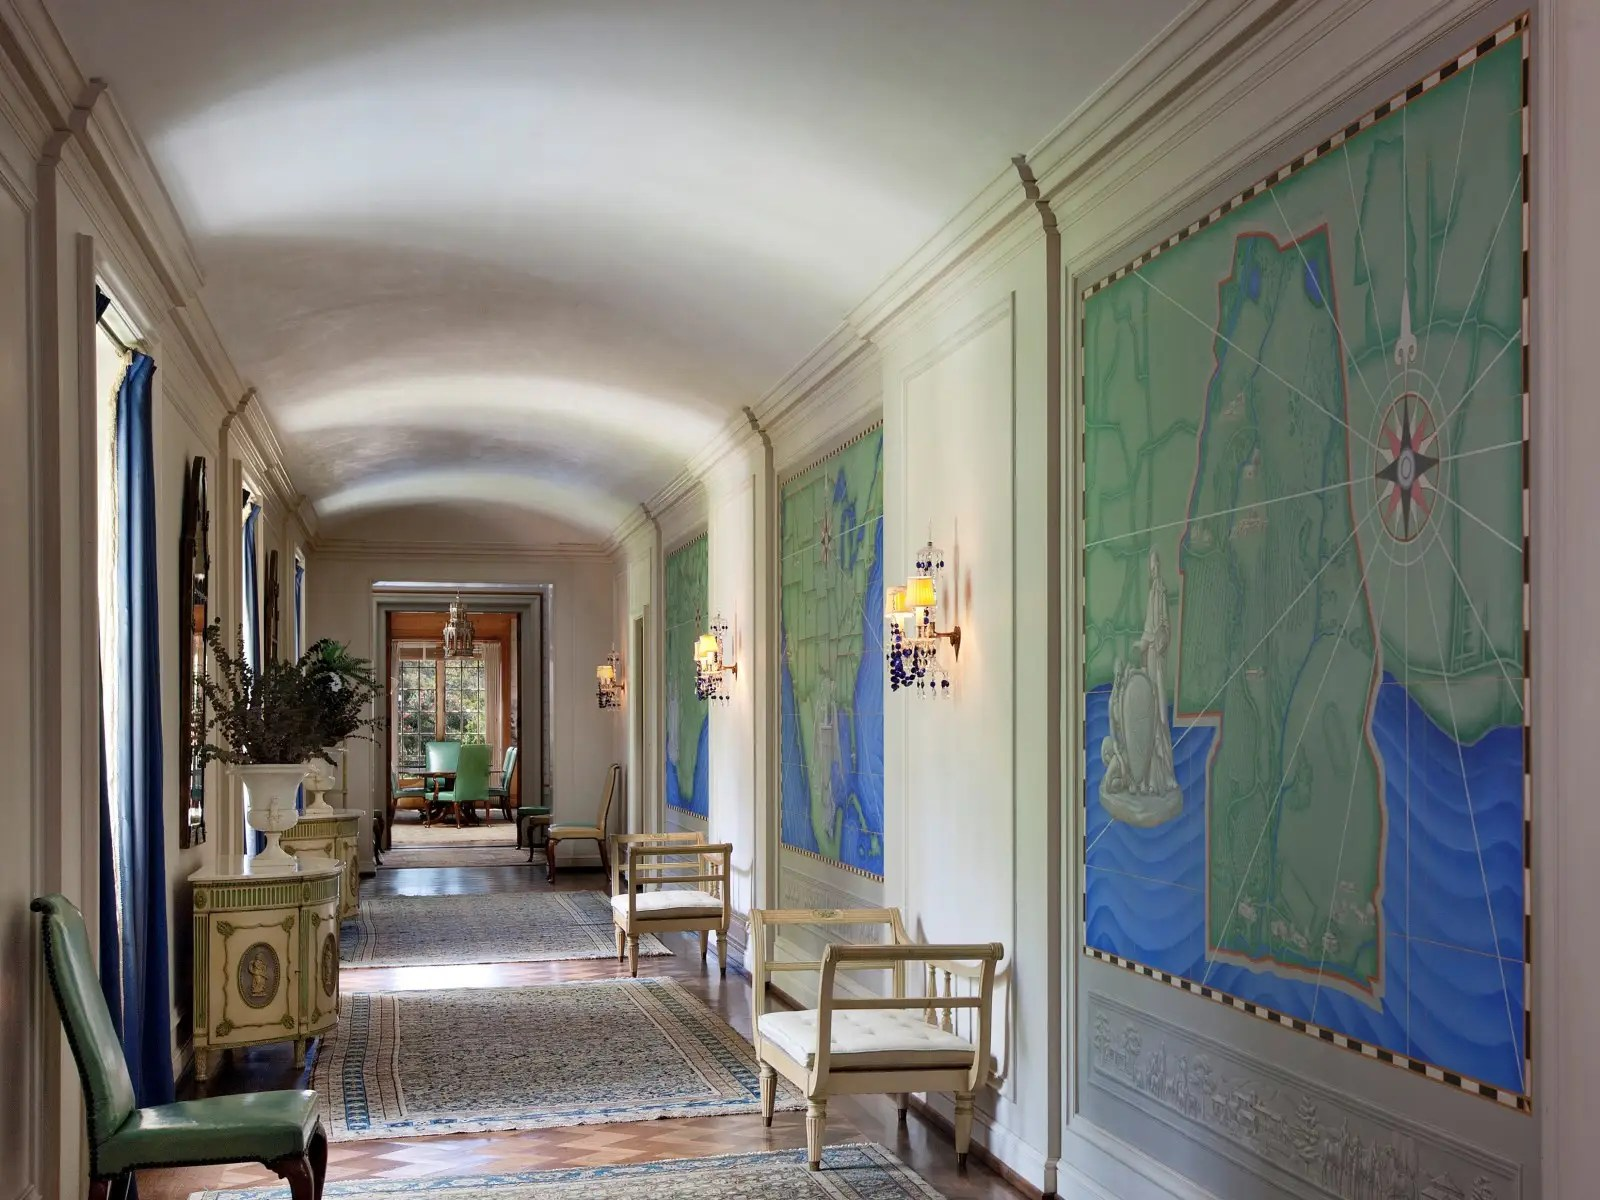 The barrel vaulted central gallery, which connects the lower level to the upper bedroom wings, is lined with hand-painted period murals.